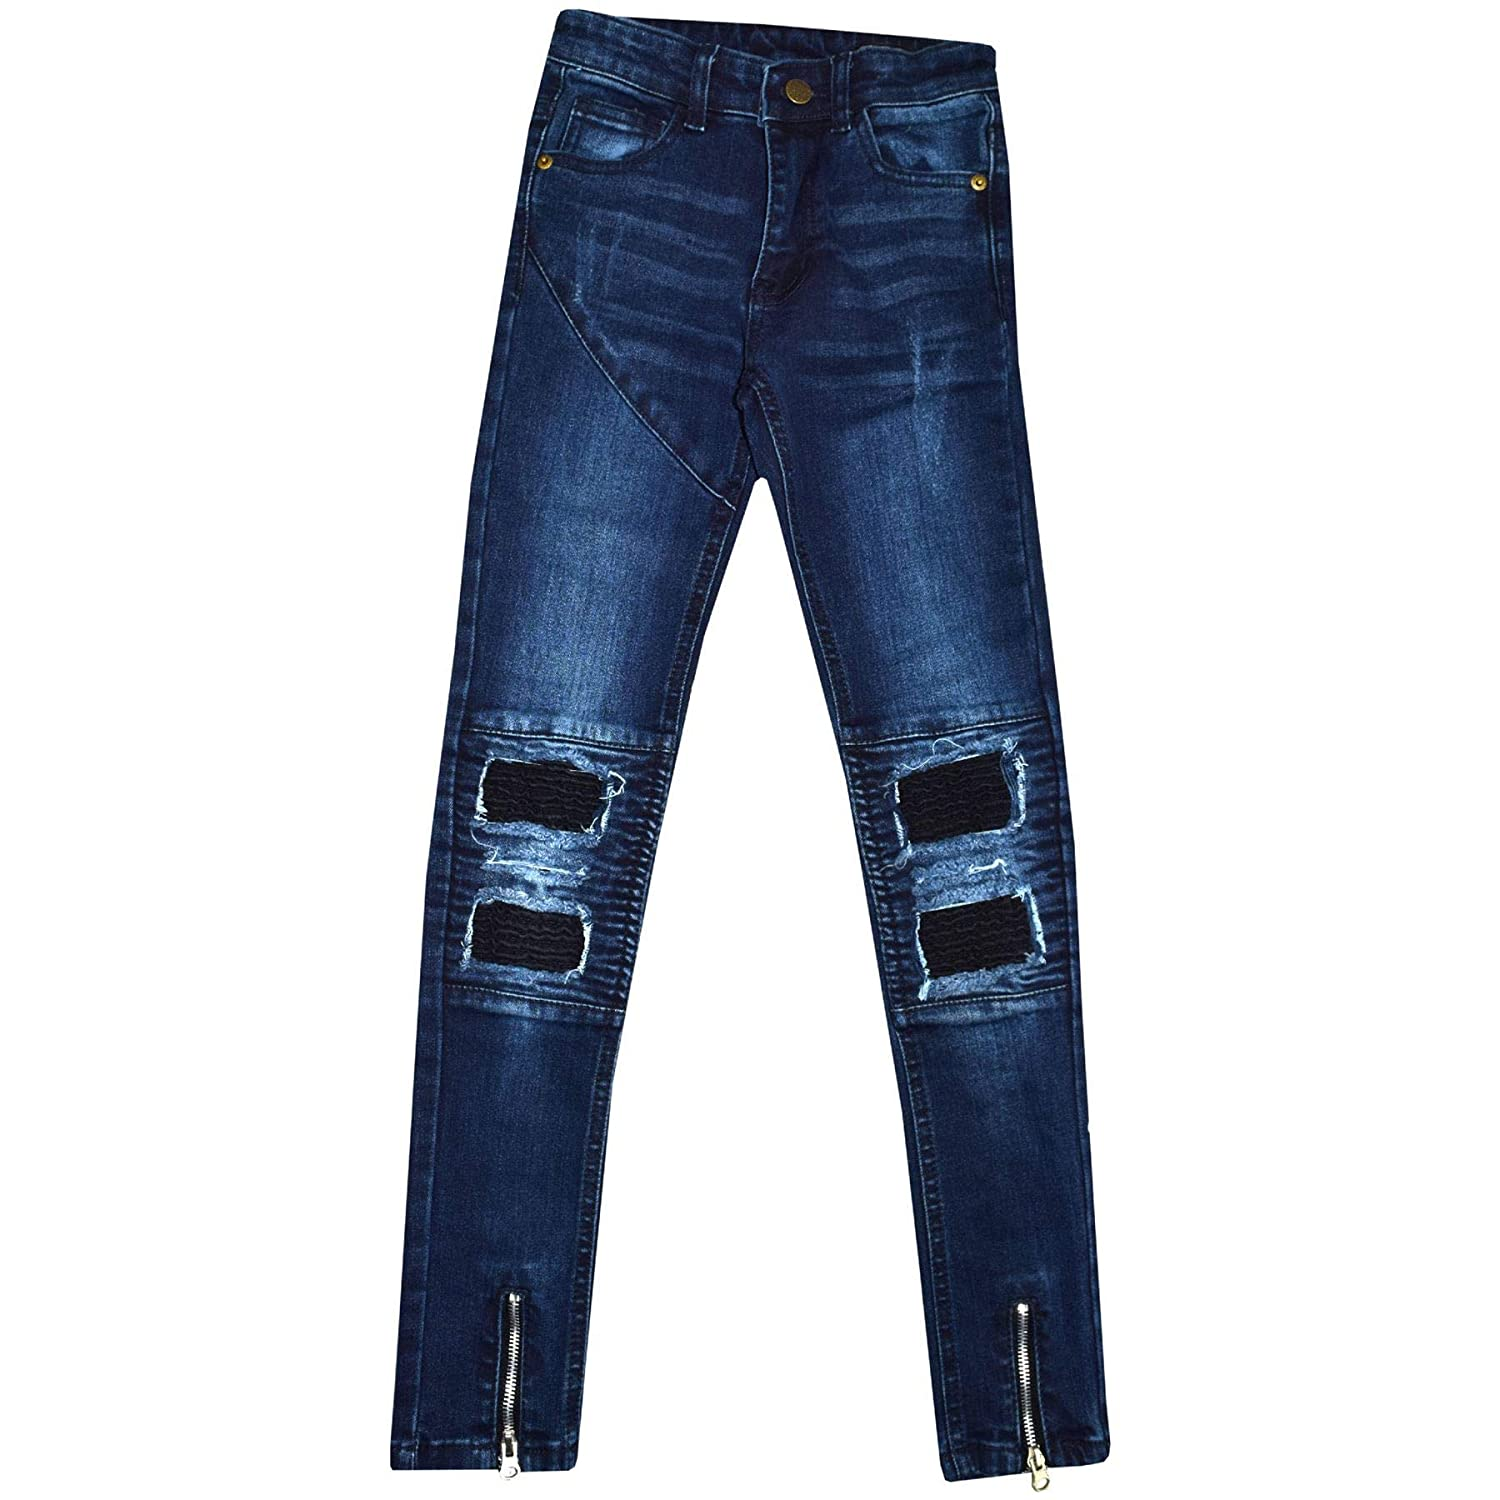 Denim Desire Girls Skinny Slim Ripped Distressed Stretchy Jean Pants Trousers Size 7 to 13 Years